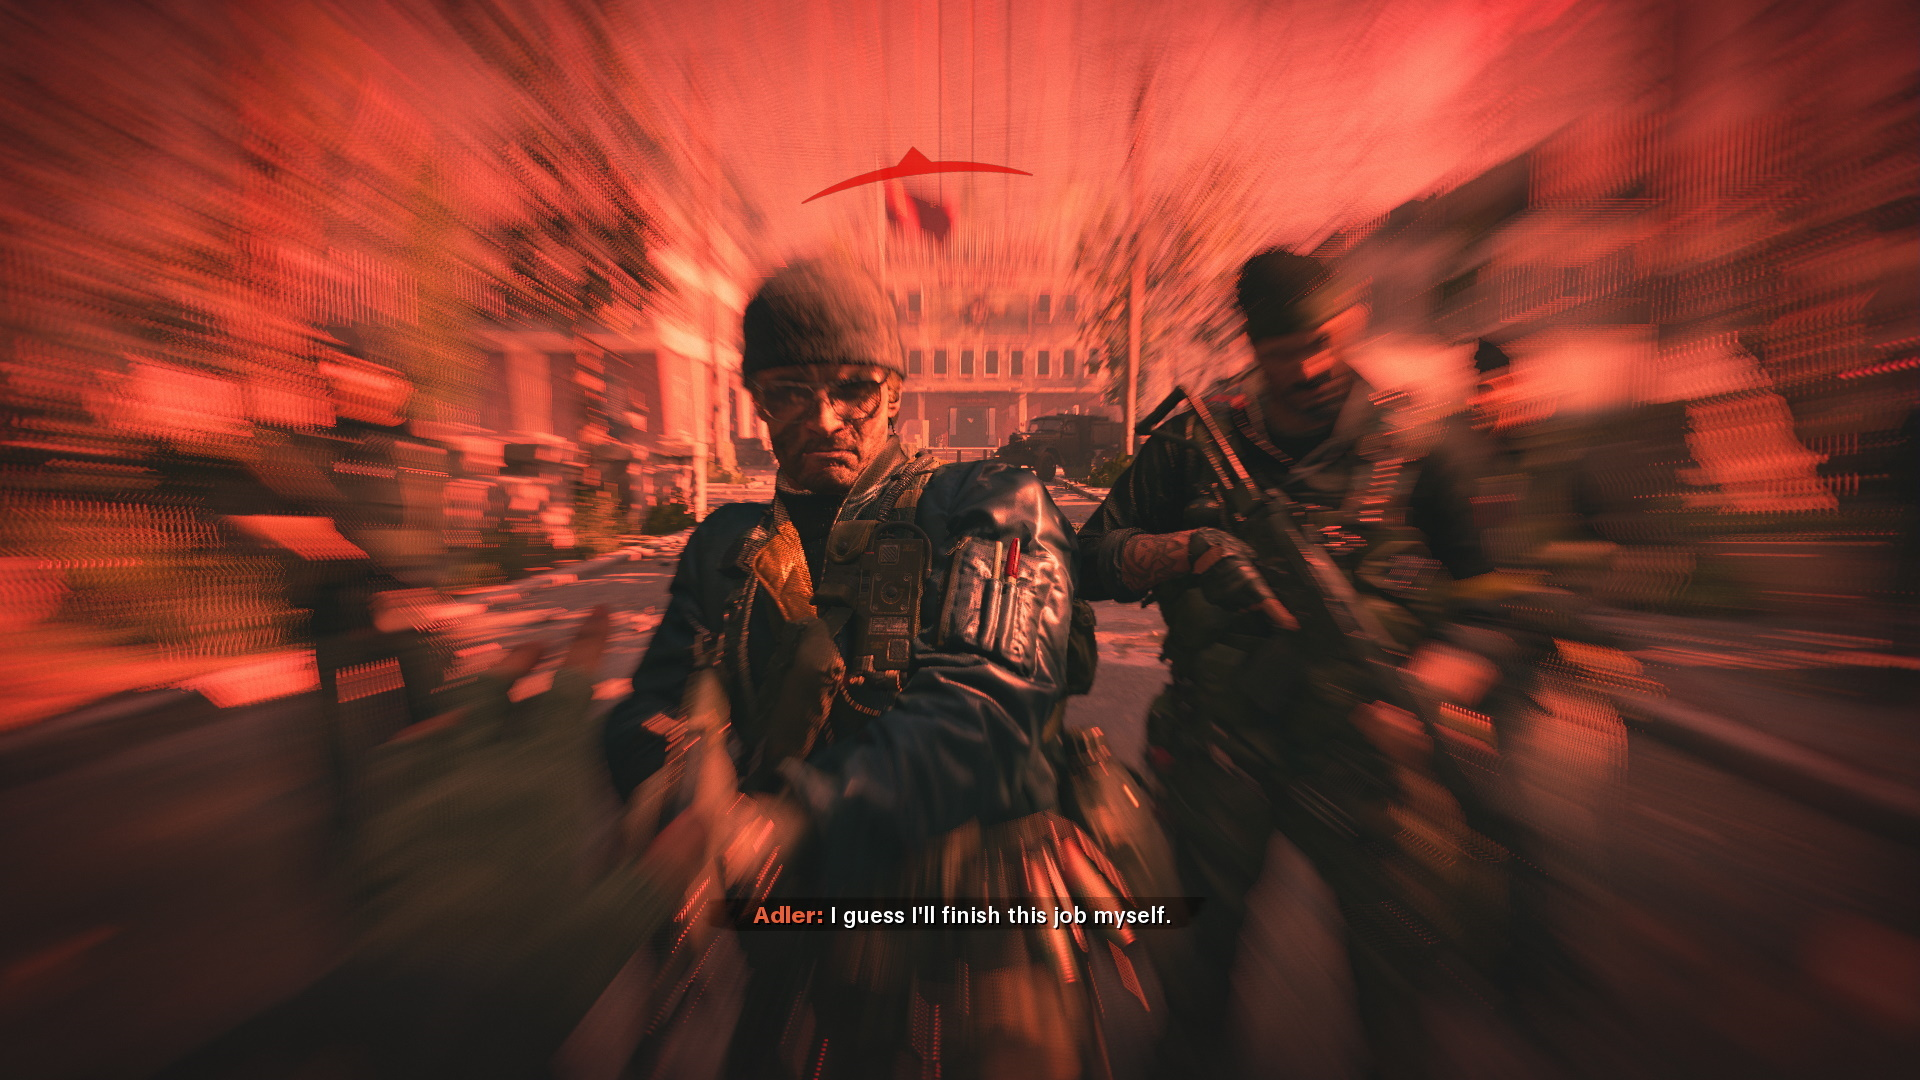 Adler shoots the player character in the face at the end of Cold War.